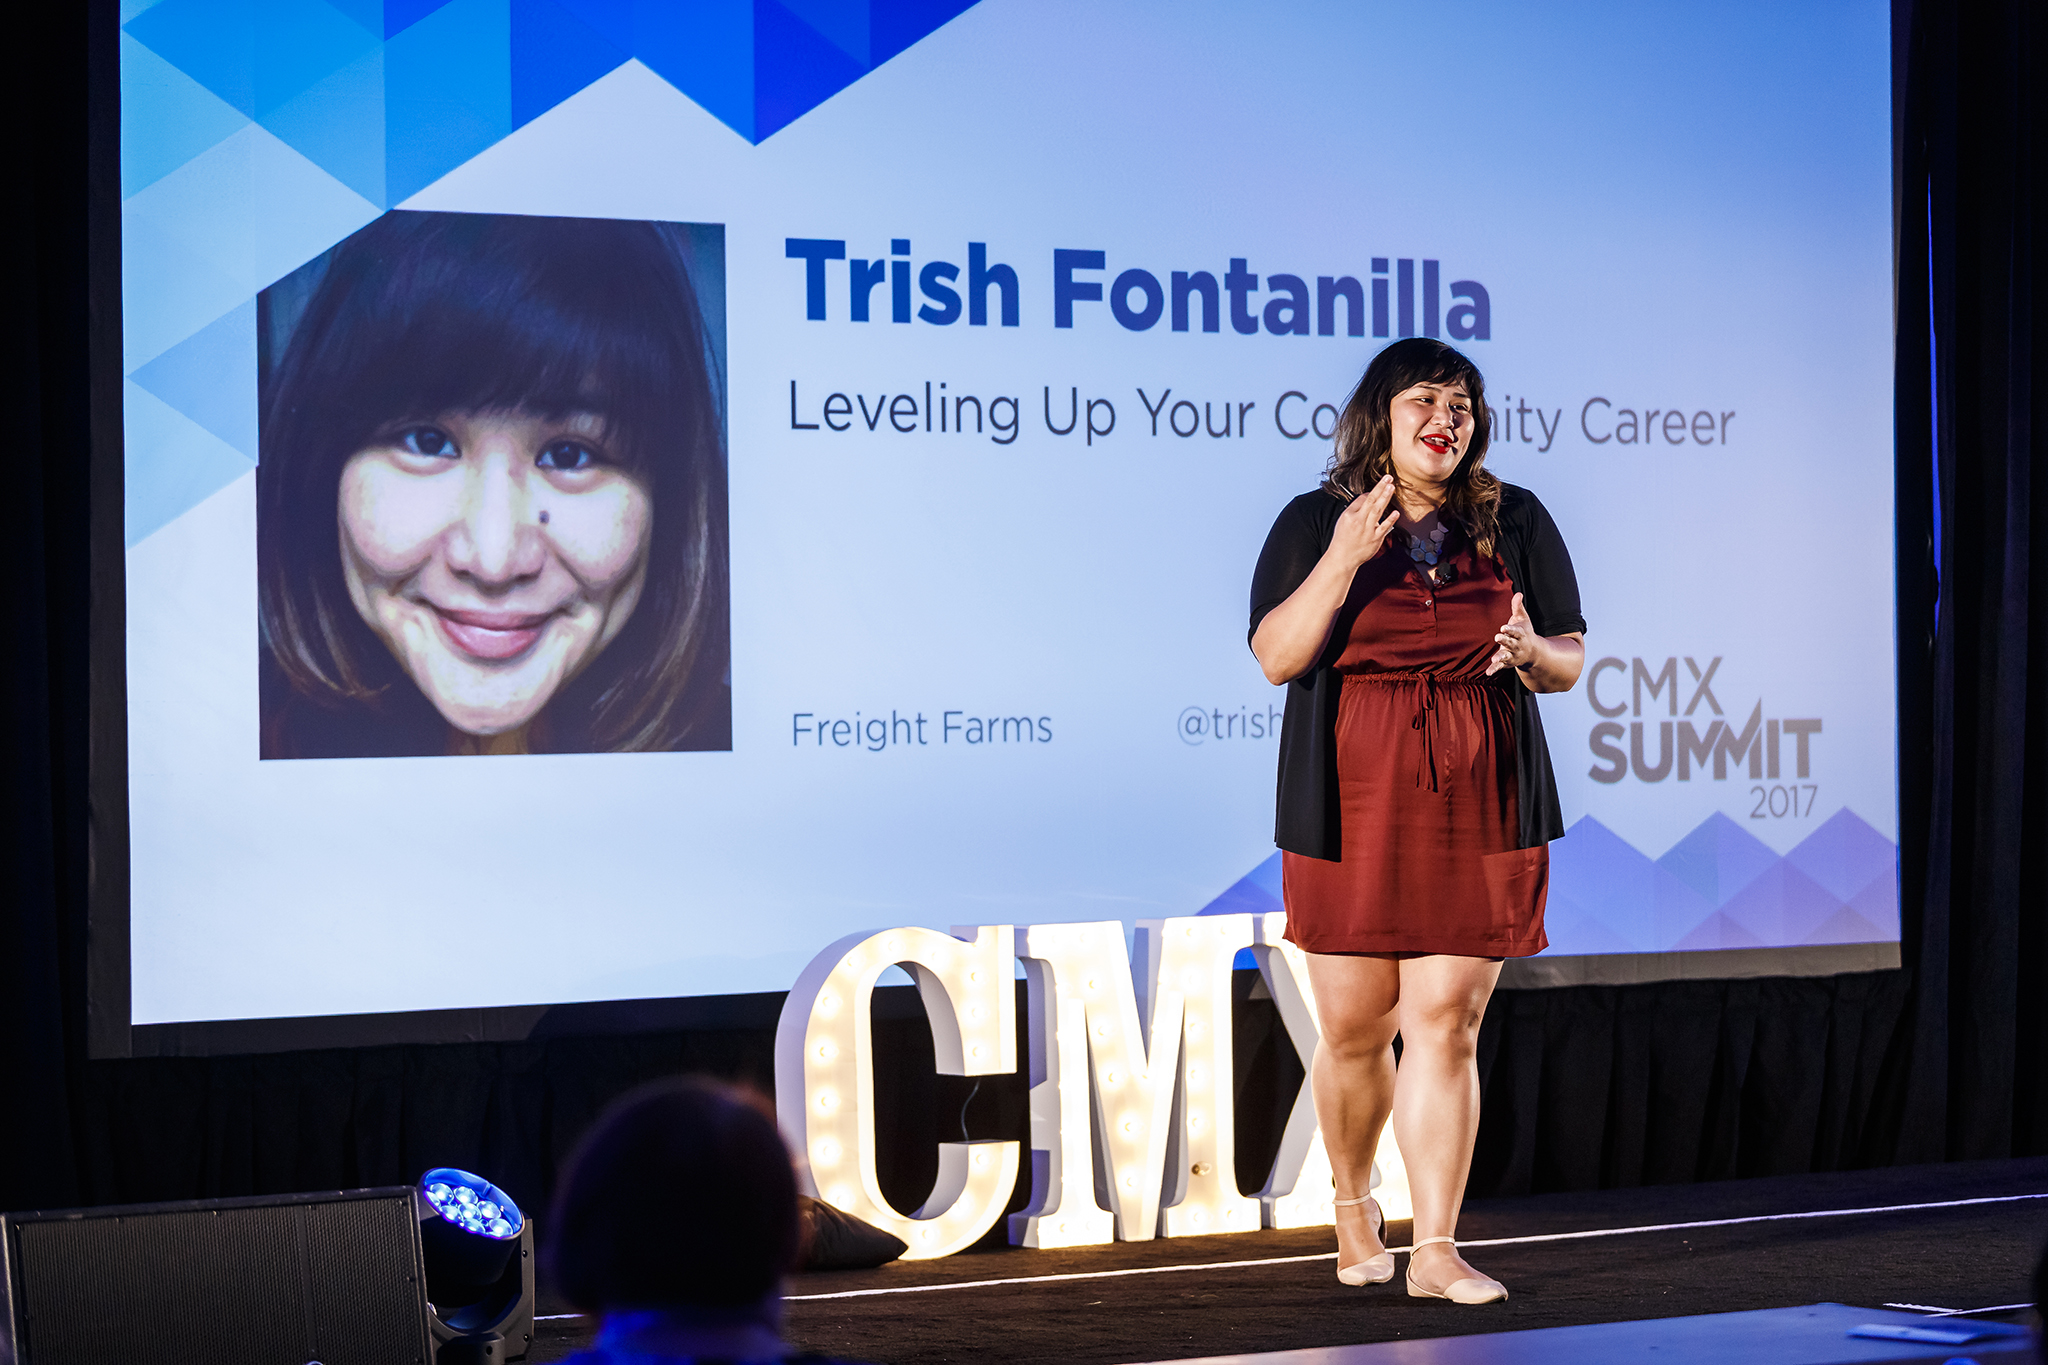 Leveling up your community career talk at   CMX Summit  .